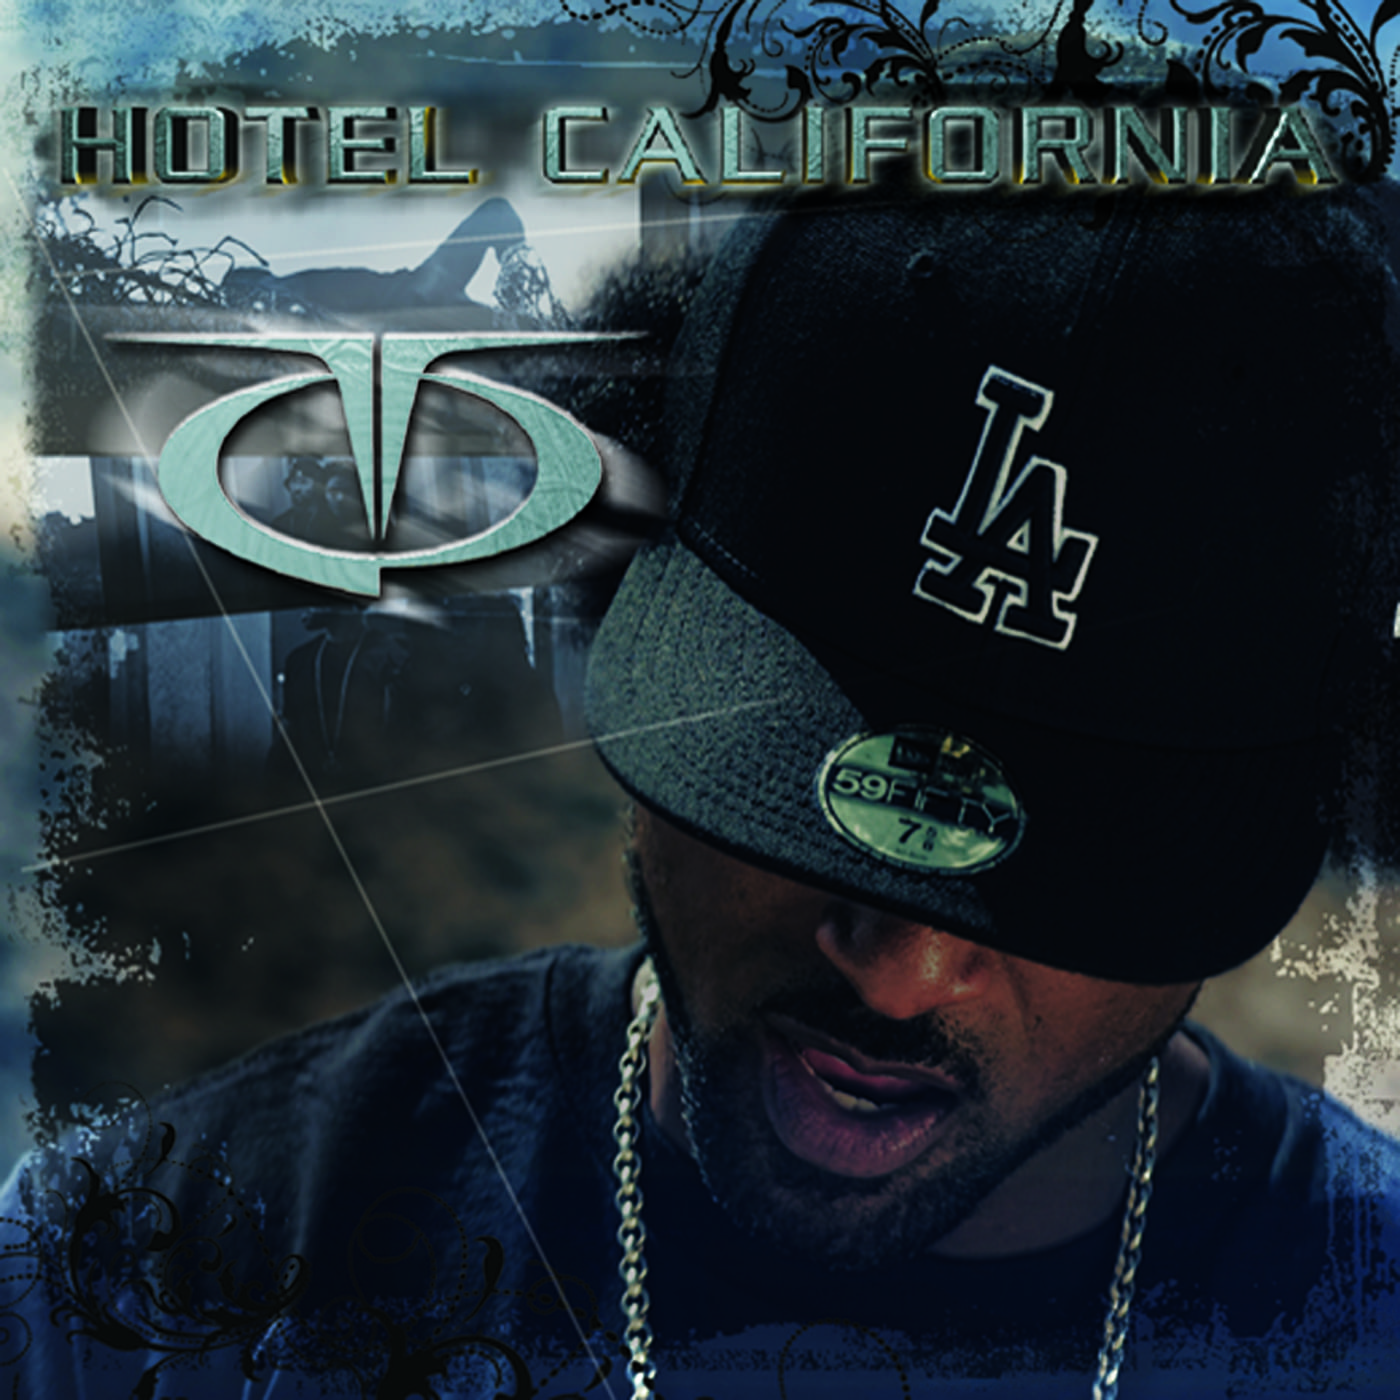 https://i0.wp.com/www.therealtq.com/wp-content/uploads/2017/01/HOTEL-CALI-SINGLE-COVER-SMALL.jpg?fit=1400%2C1400&ssl=1